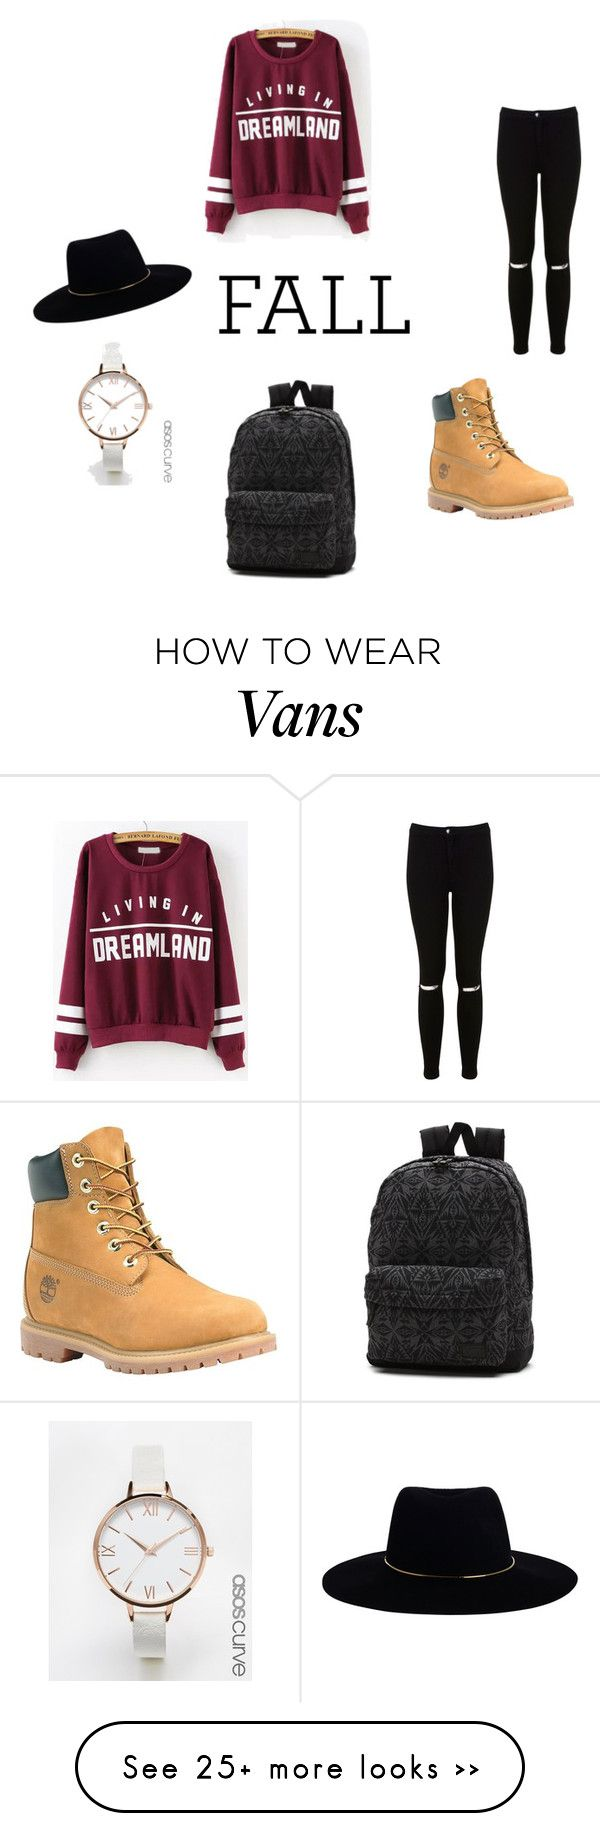 """fall"" by nadjaelsink on Polyvore featuring Miss Selfridge, Vans, Timberland, ASOS Curve and Zimmermann"